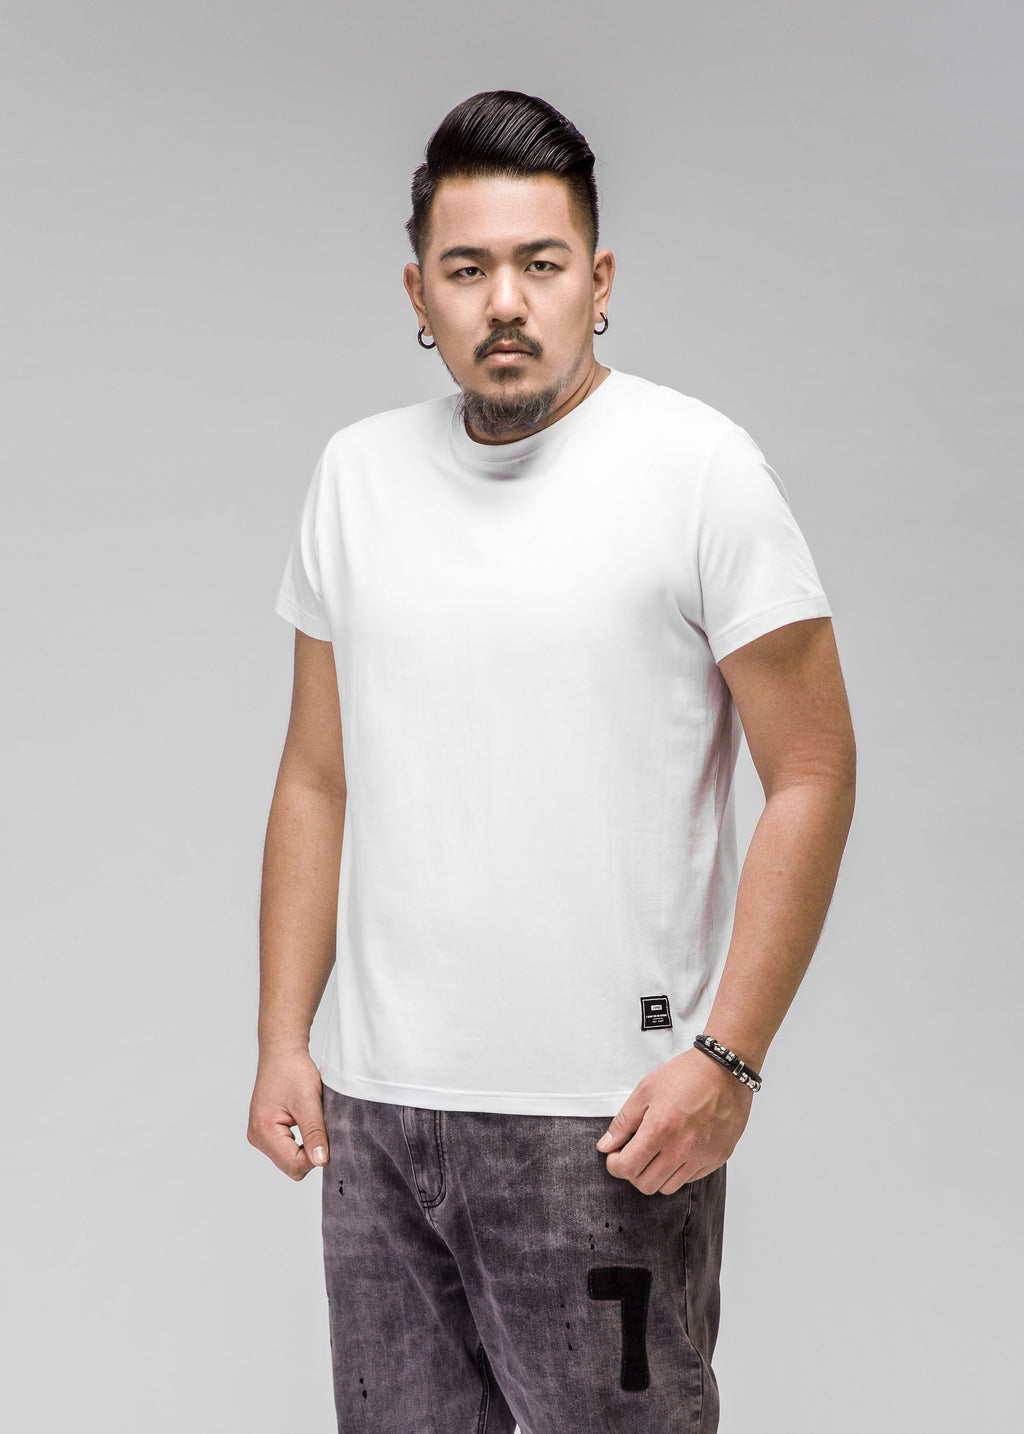 O-Neck Short Sleeved T-Shirt - 72JT0447